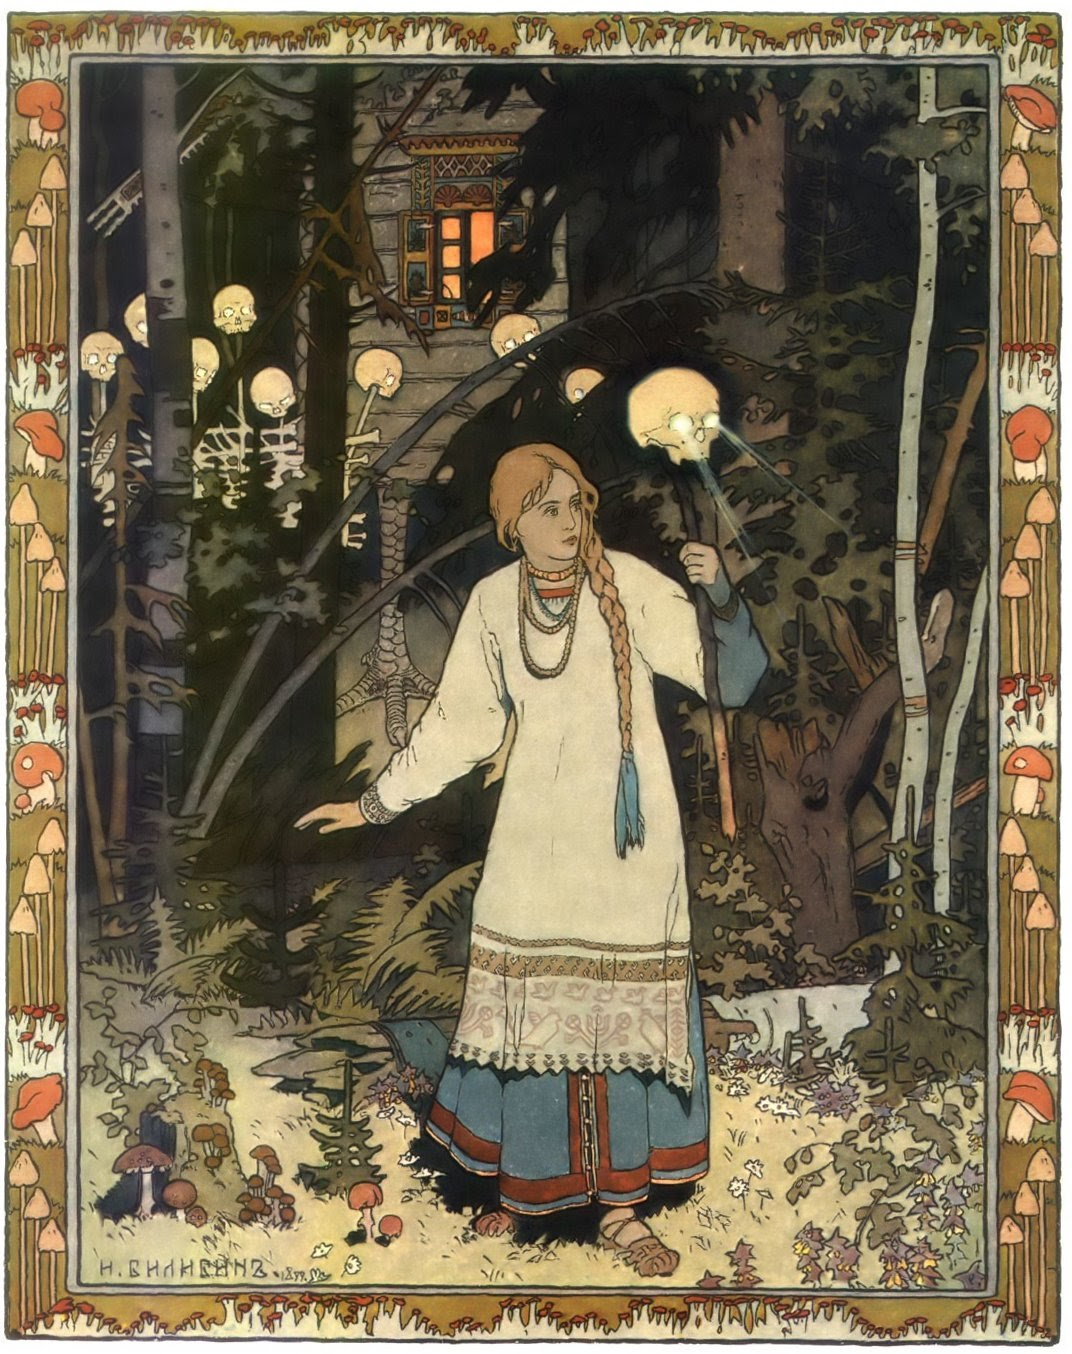 woman with long braid and cloak walking through the forest using a skull on a stick with light shining out of the eyes as a flashlight with there are more skeletons and a house behind her